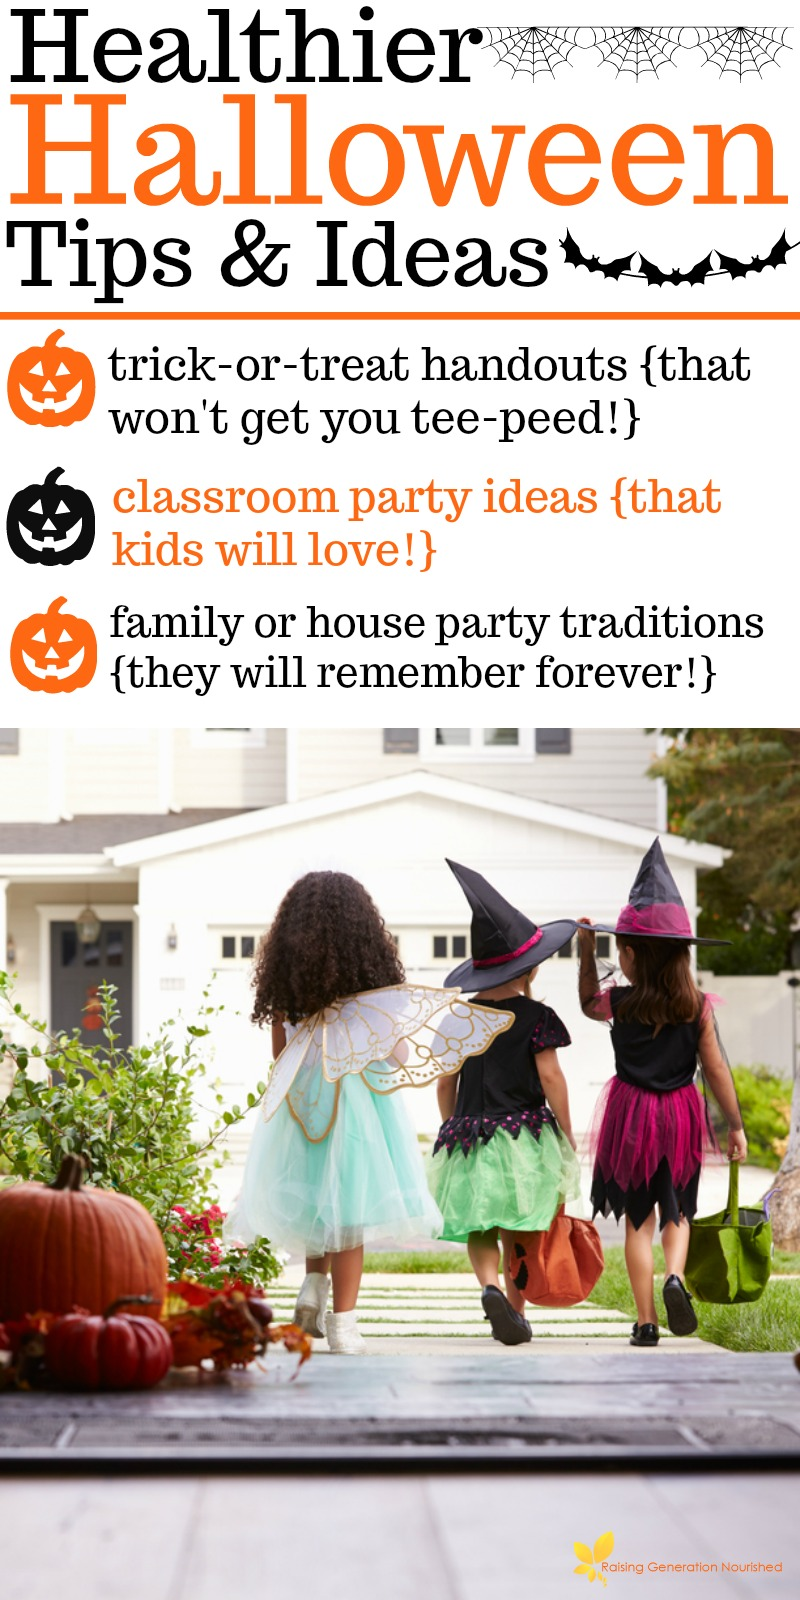 Healthy Halloween Tips and Ideas :: Healthier trick-or-treating ...